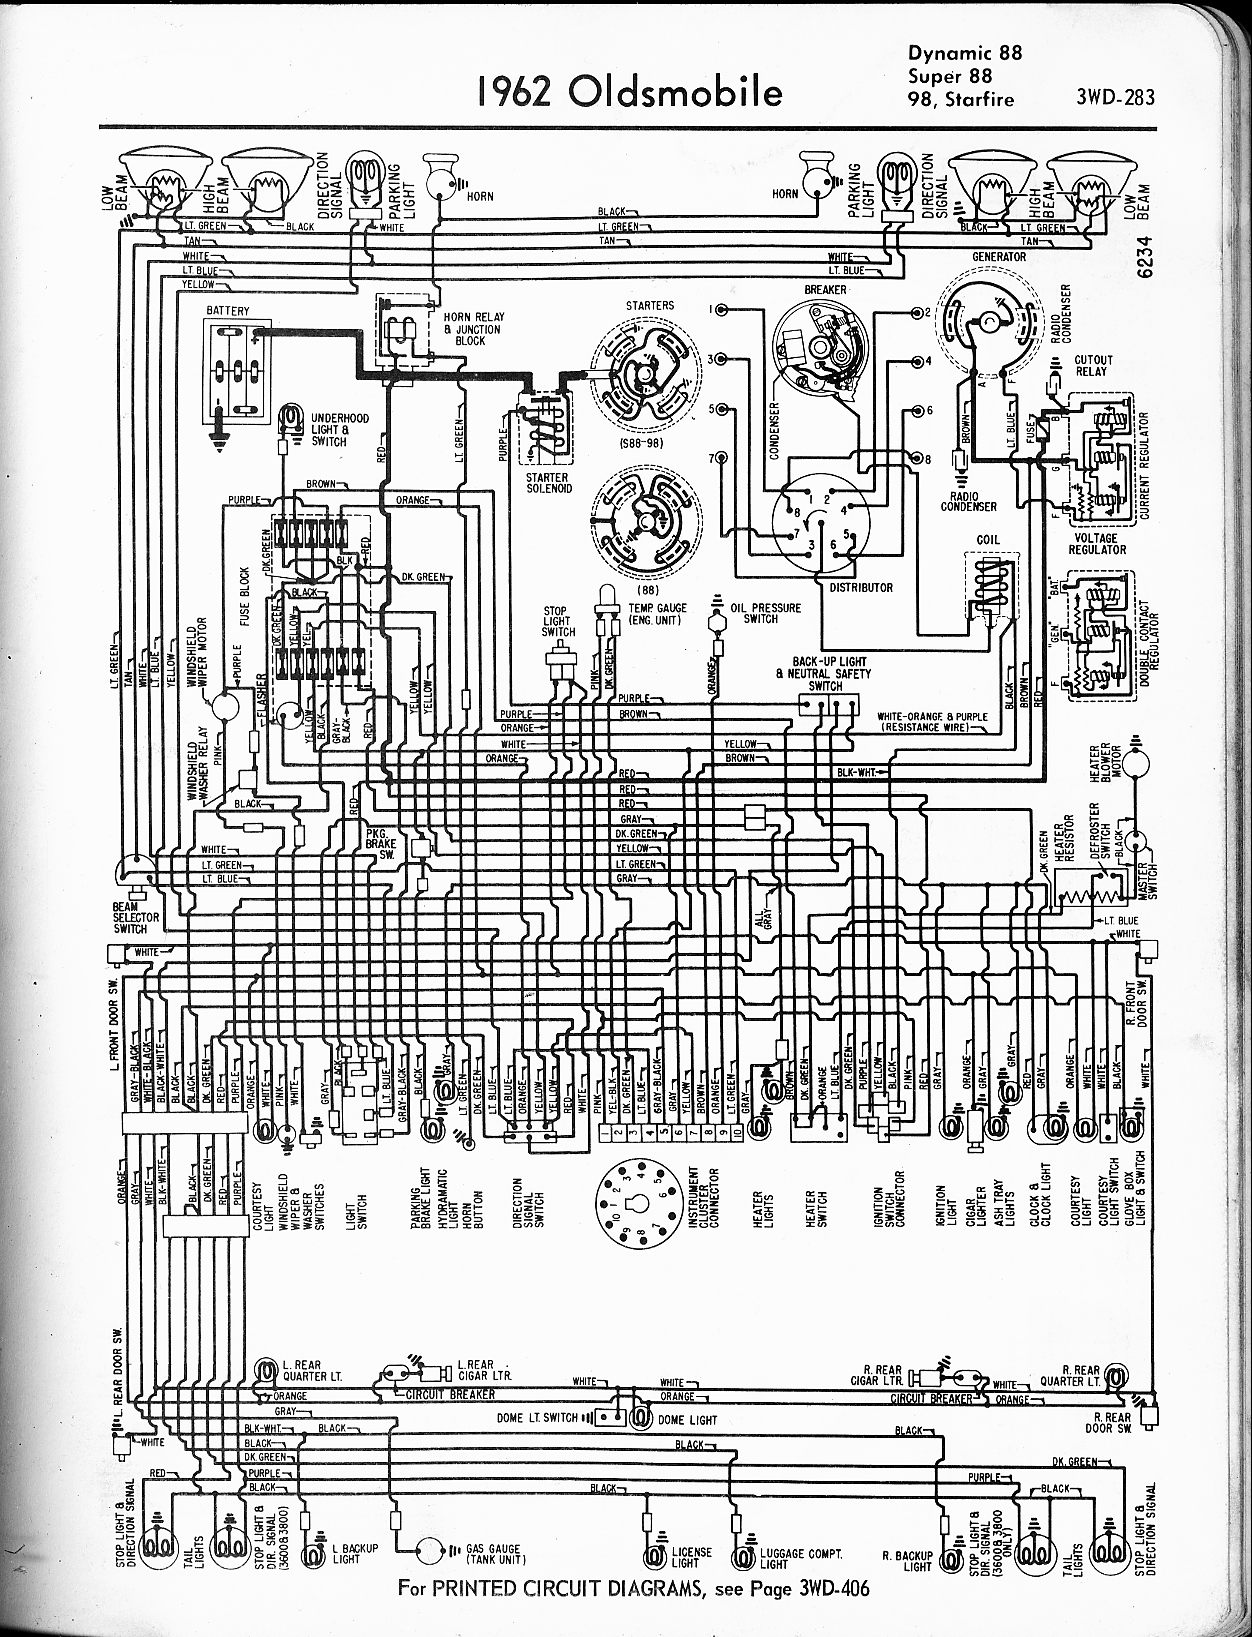 1966 Pontiac Bonneville Wiring Diagram Simple Guide About Triumph Oldsmobile Diagrams The Old Car Manual Project